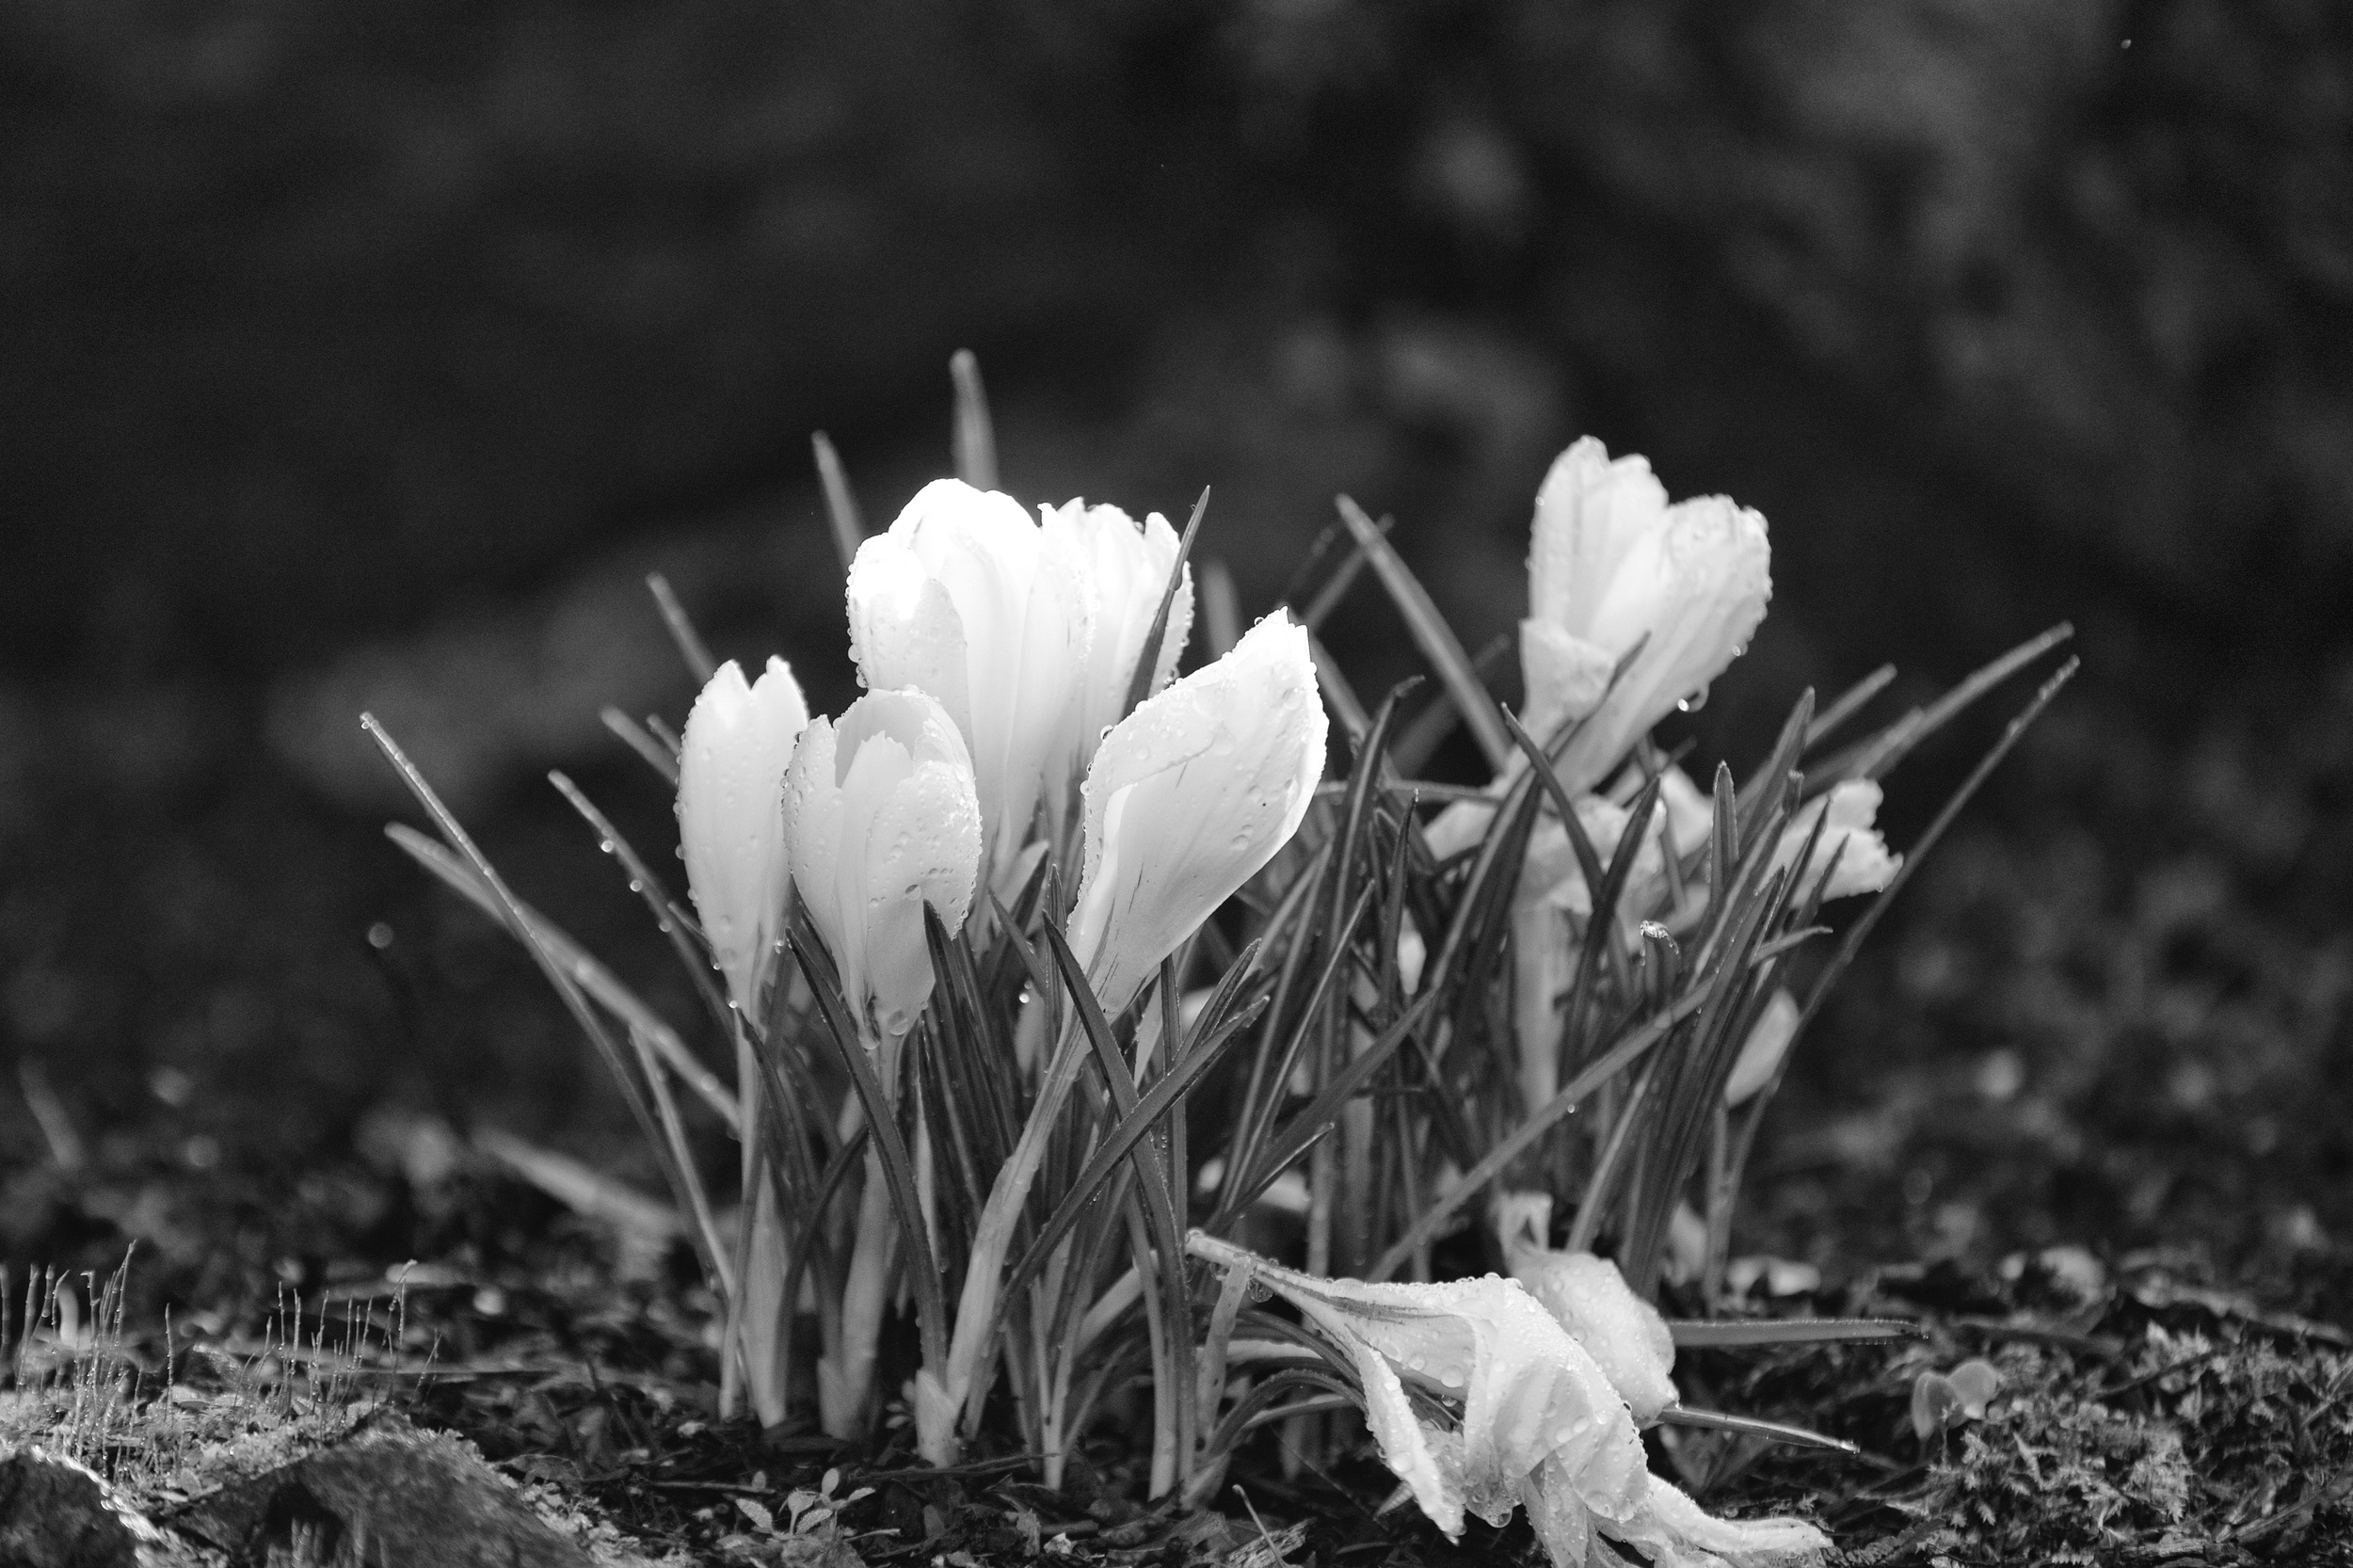 The mist gathers on delicate white petals. Canon 7D Mark II EF 70-200 2.8 at 200mm f/2.8 1/1250